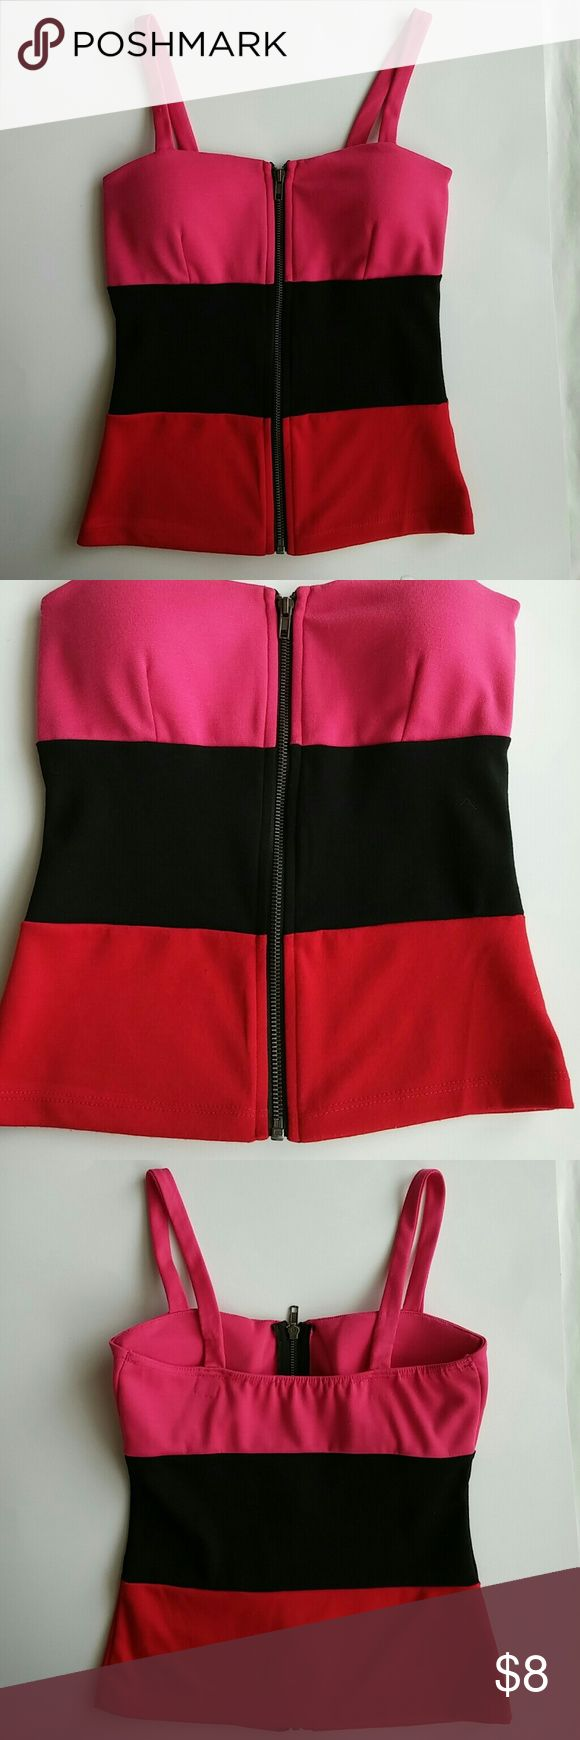 Tank top Pink, black and red tank top. Never worn. Tops Tank Tops